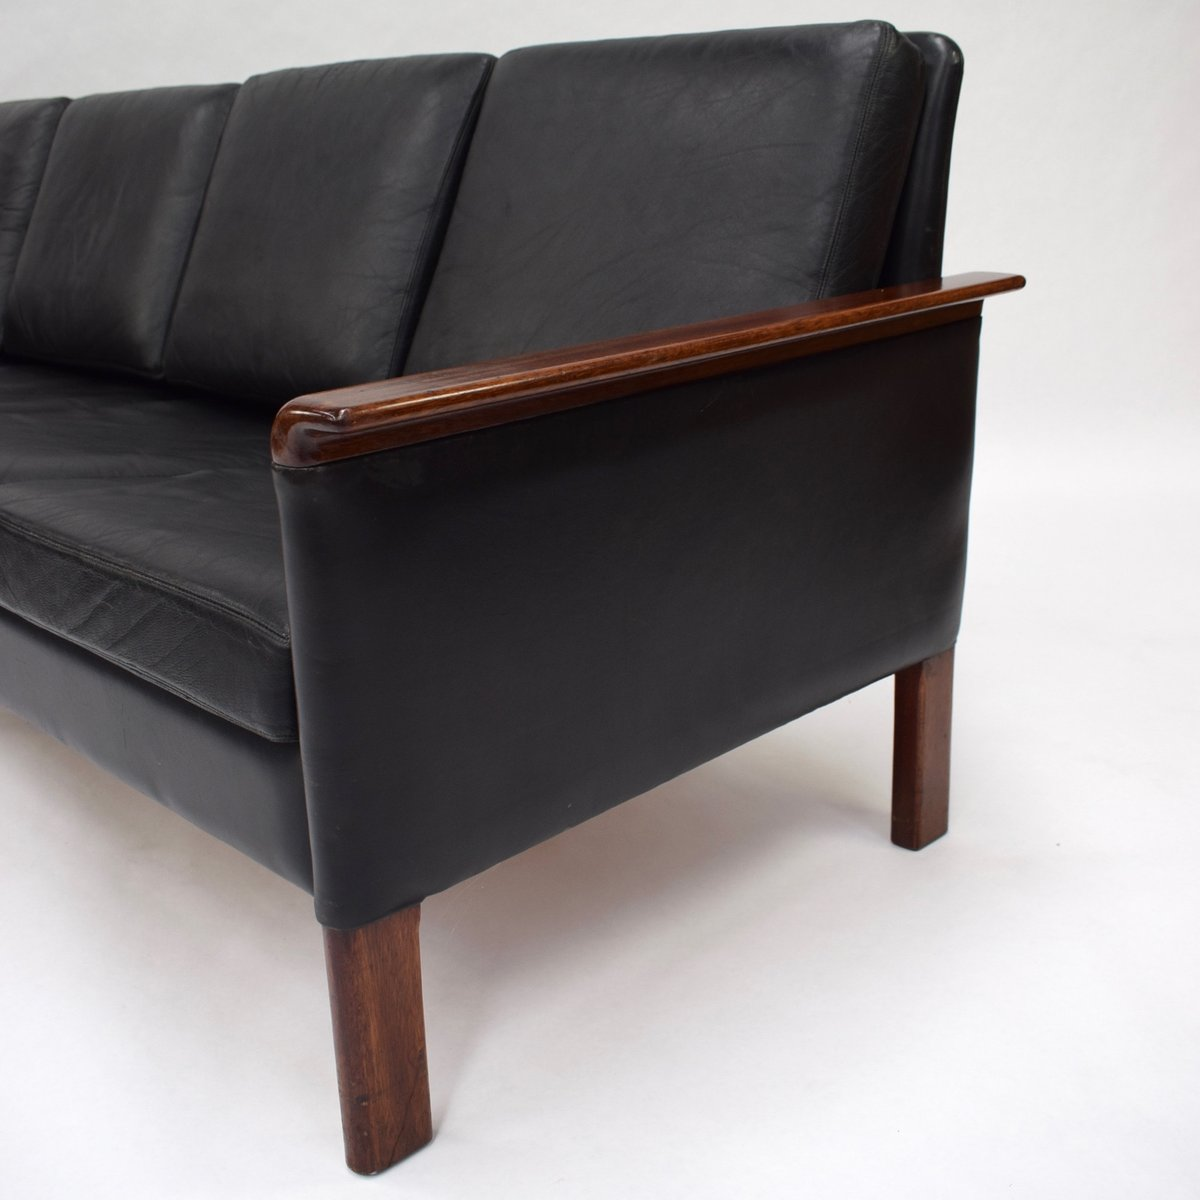 Leather Sofas For Sale In Northern Ireland: Scandinavian Black Leather Sofa, 1950s For Sale At Pamono